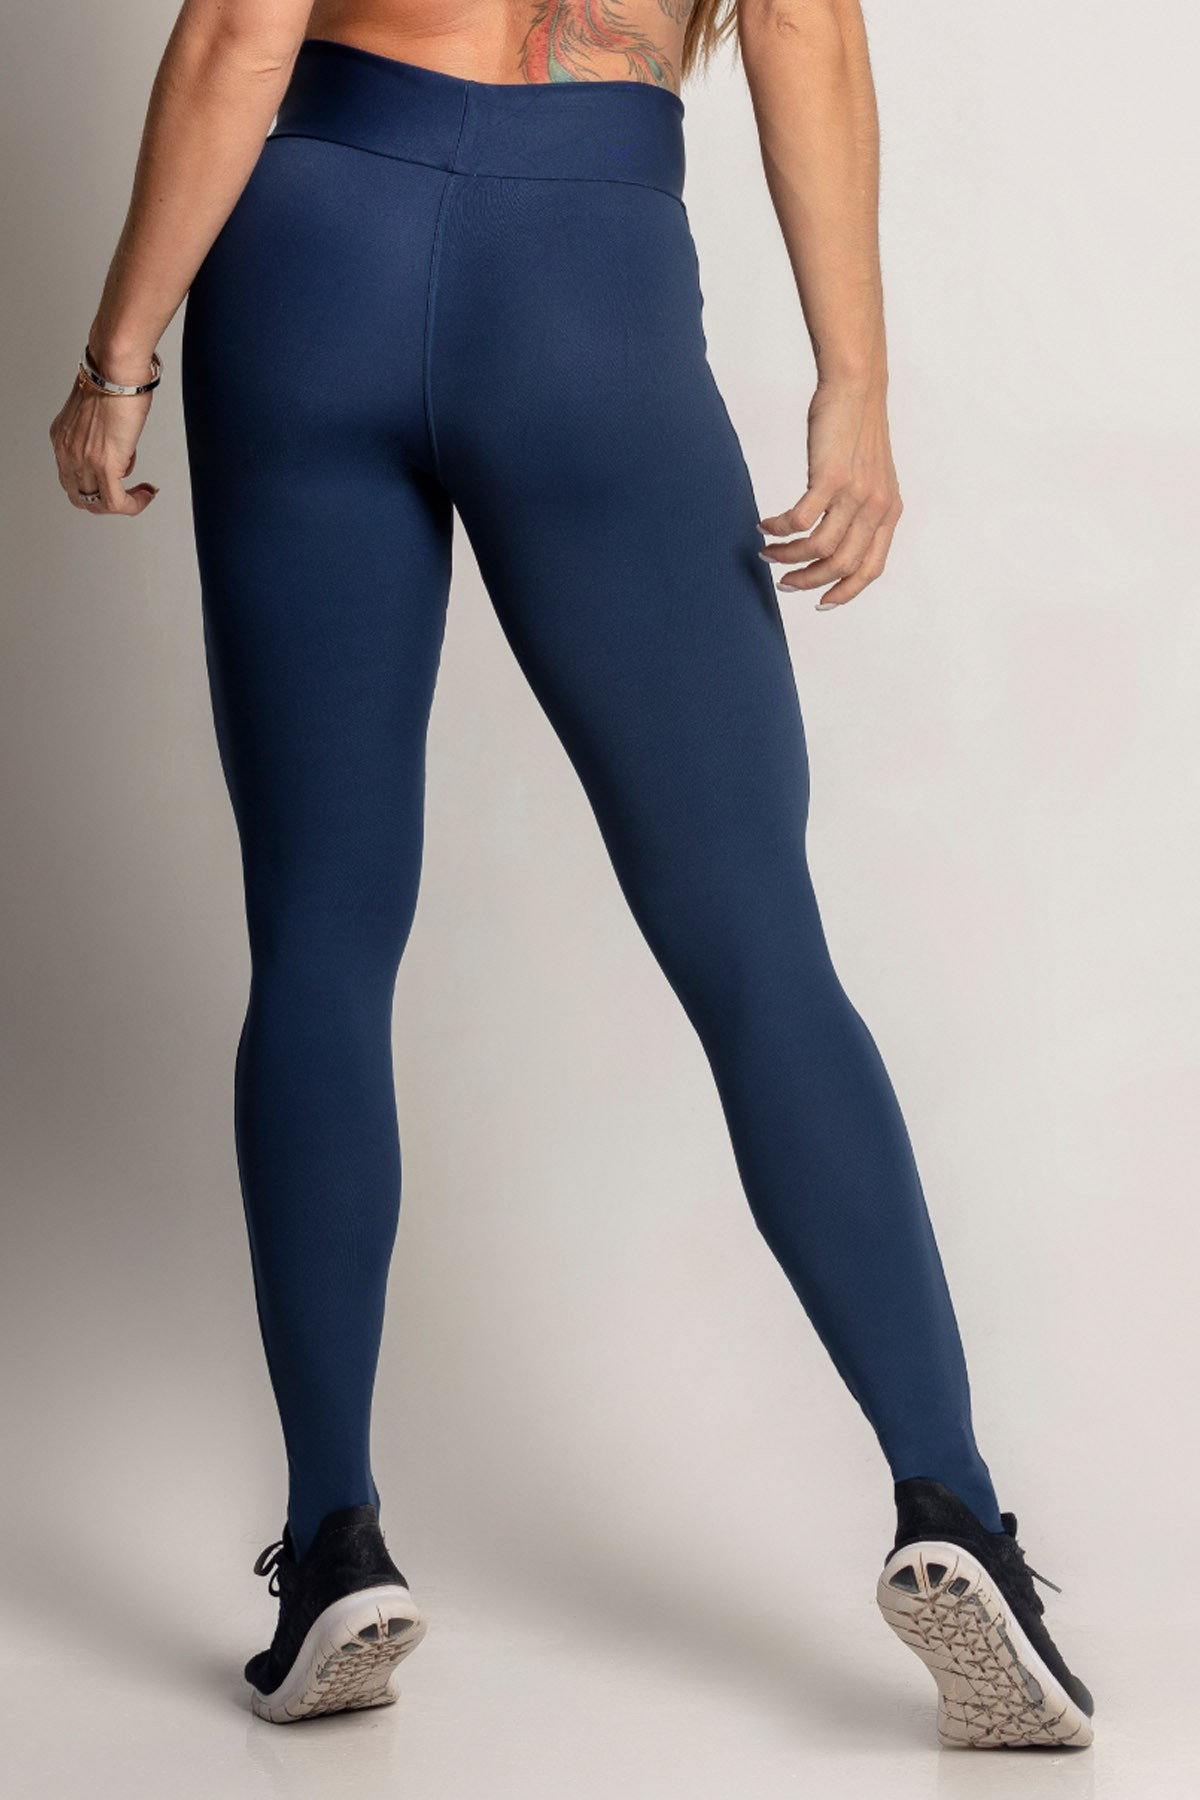 LEGGING DREAM FITNESS AZUL MARINHO COM TULE HIPKINI